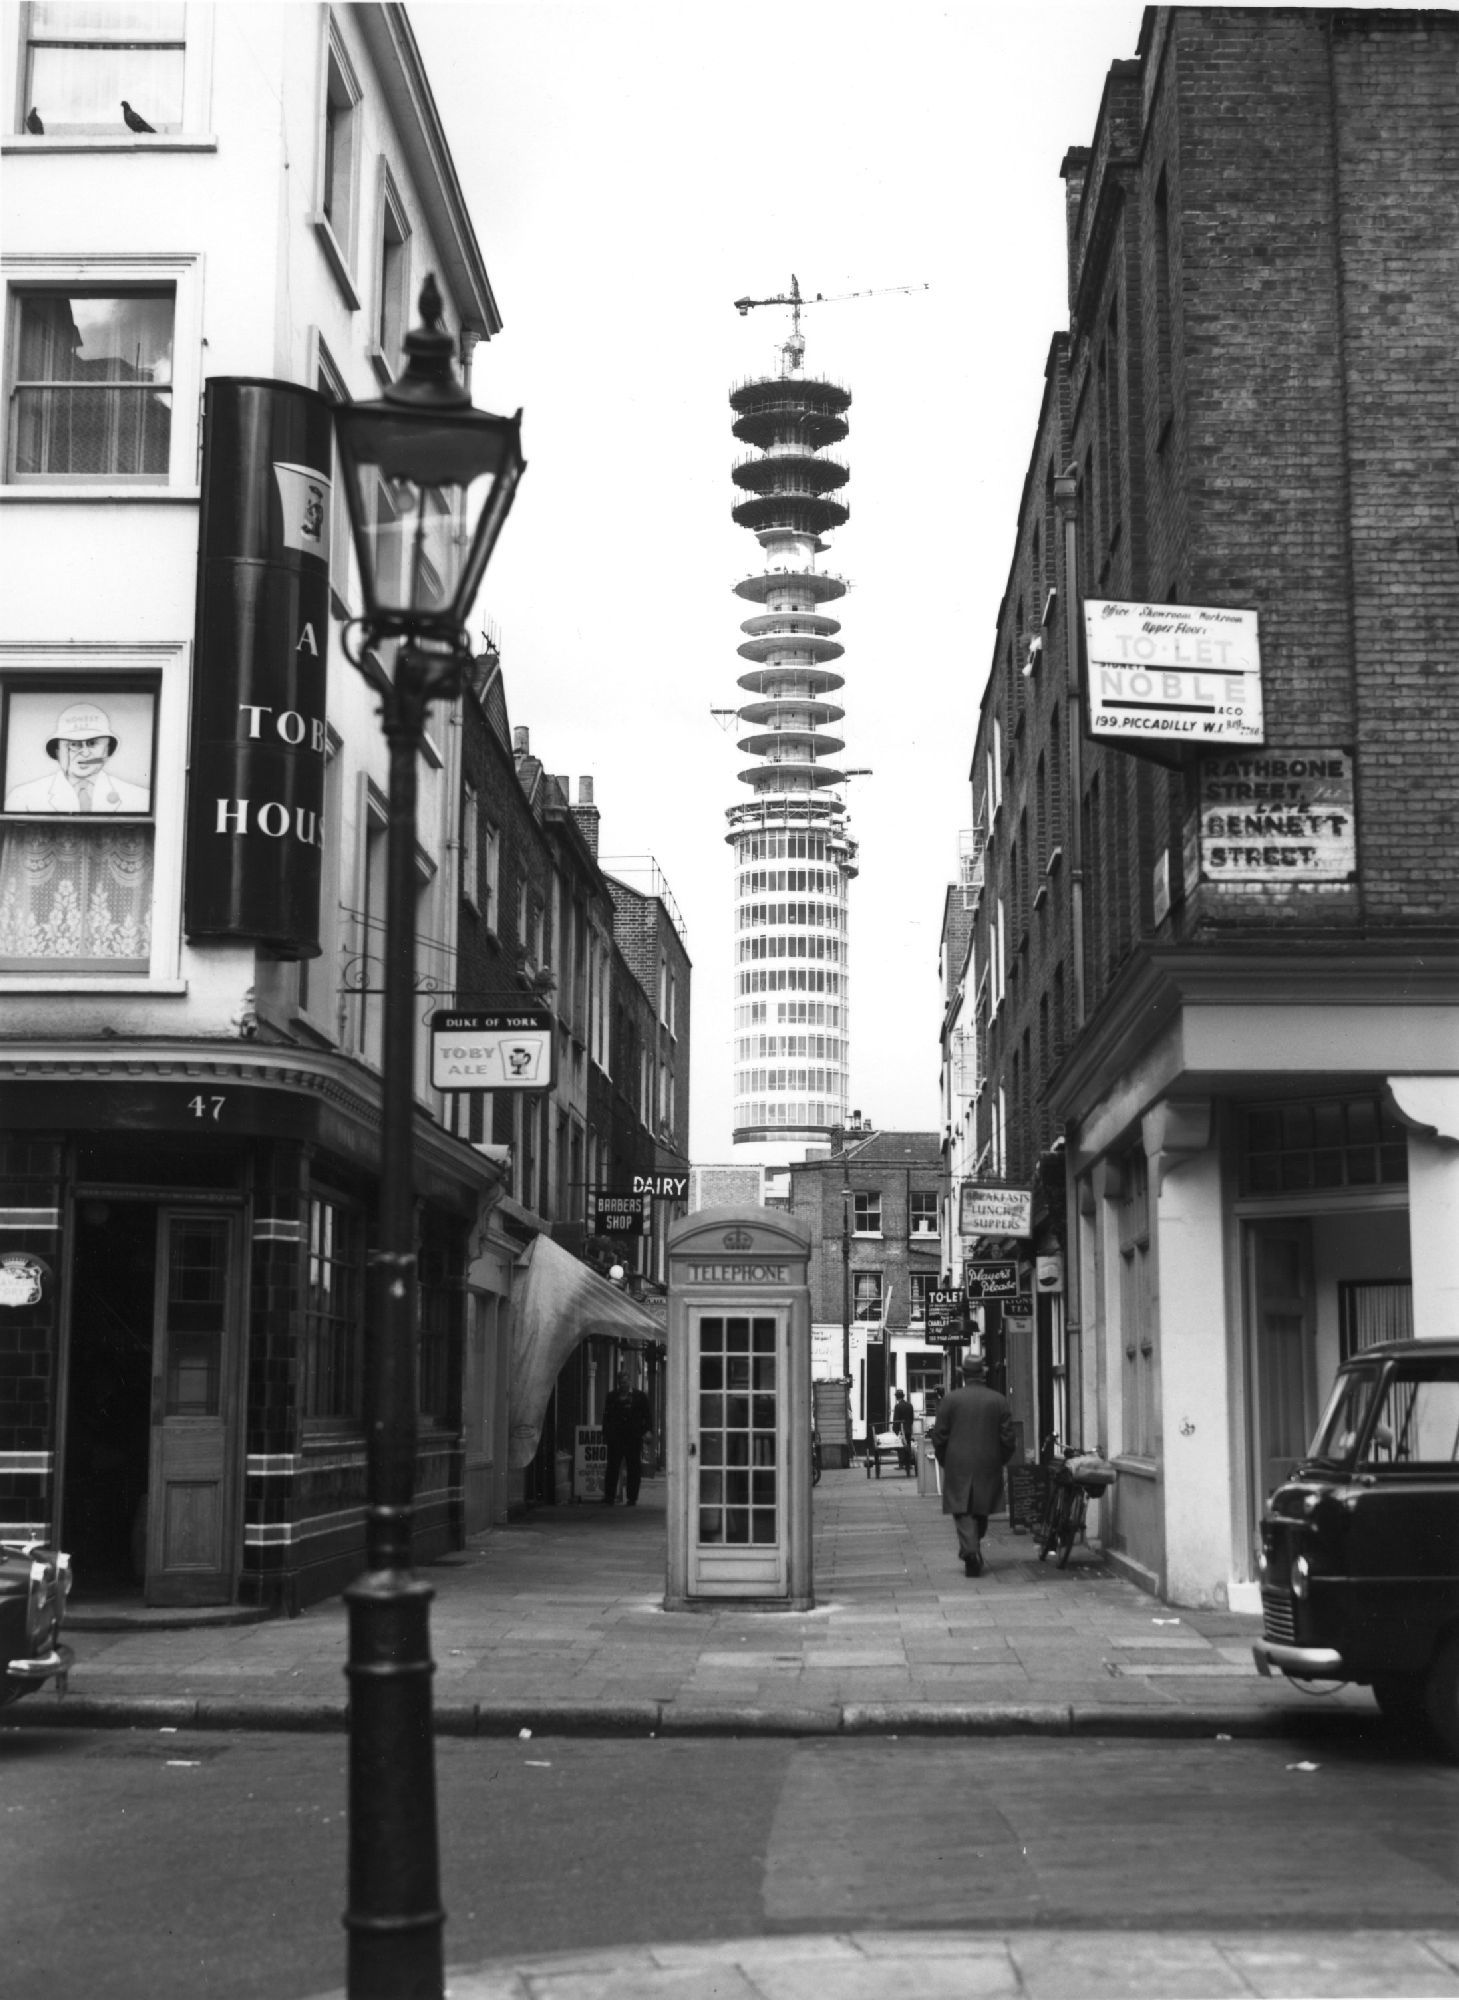 A view of the #BTTower